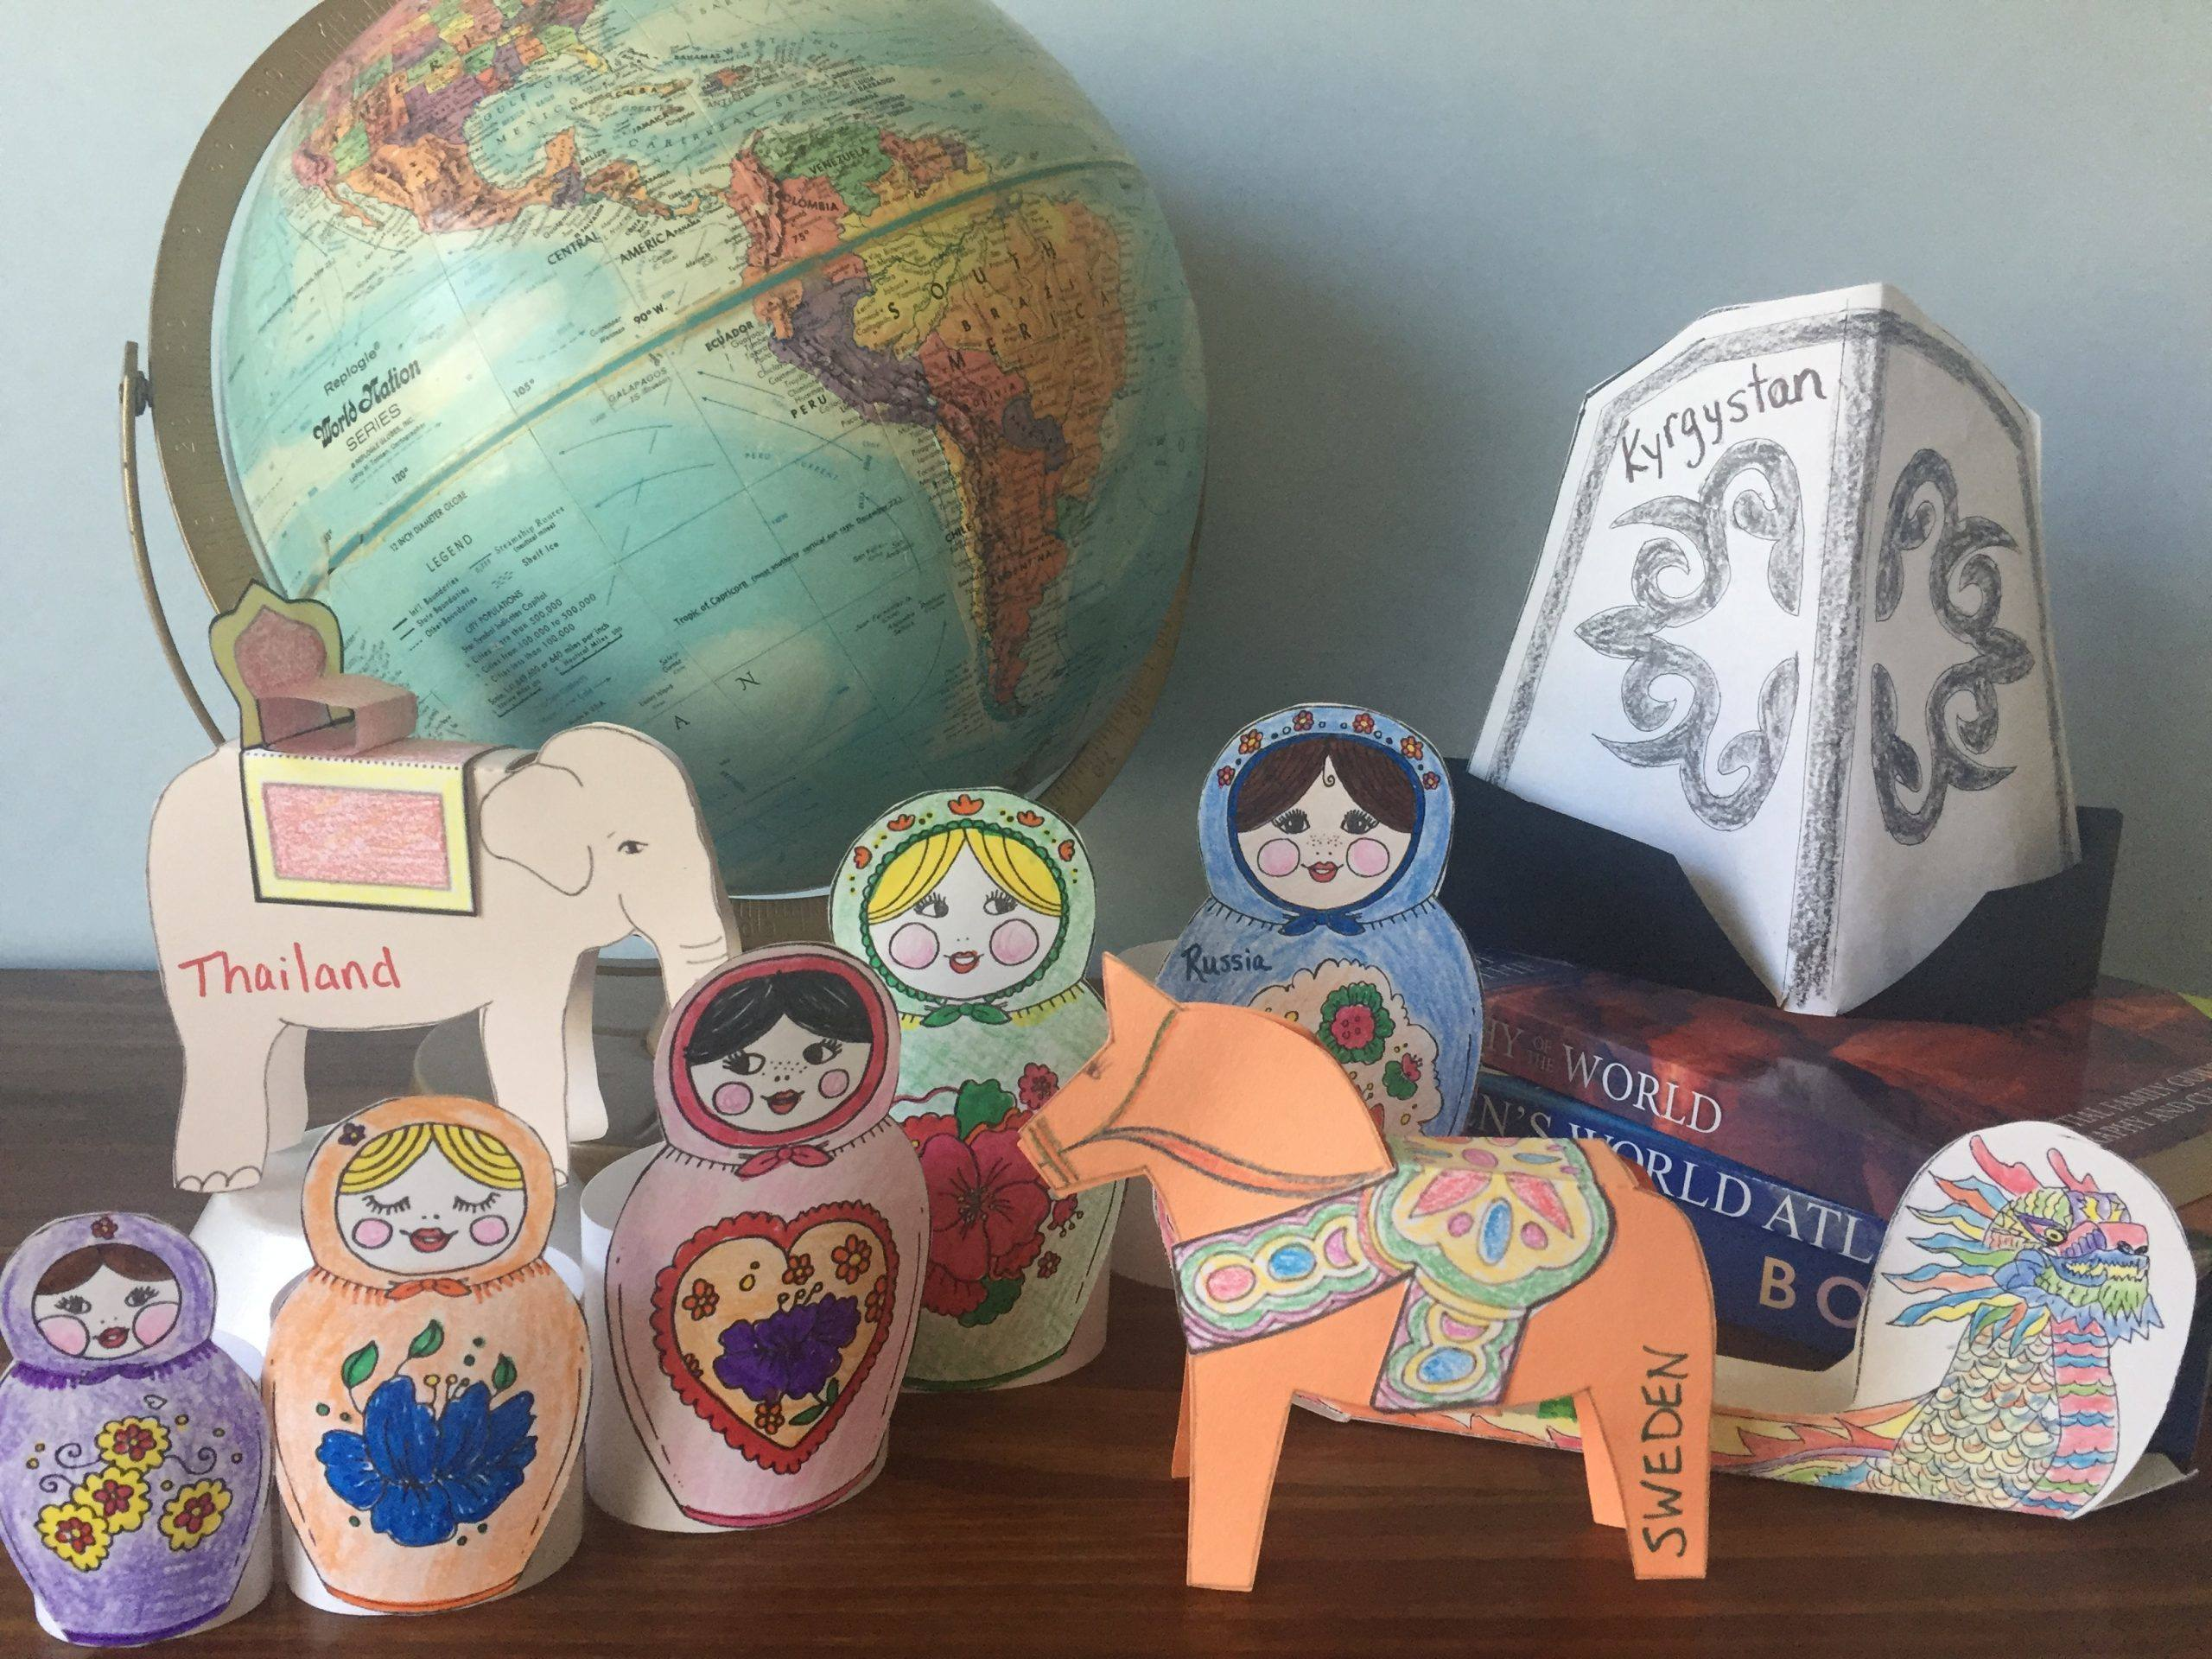 Let's Go Geography teaches kids the countries of the globe with fun activities and hands-on projects. Younger kids love the video, music, & creative art projects. Older kids add Notebooking, atlas research, & additional maps. Moms & Teachers love how it makes their job so easy. Share this Pin! #homeschoolgeographycurriculum #homeschoolgeography #geographycurriculum #letsgogeography #geographyforkids #geographyoftheworld #elementarygeographycurriculum #makinggeographyfun